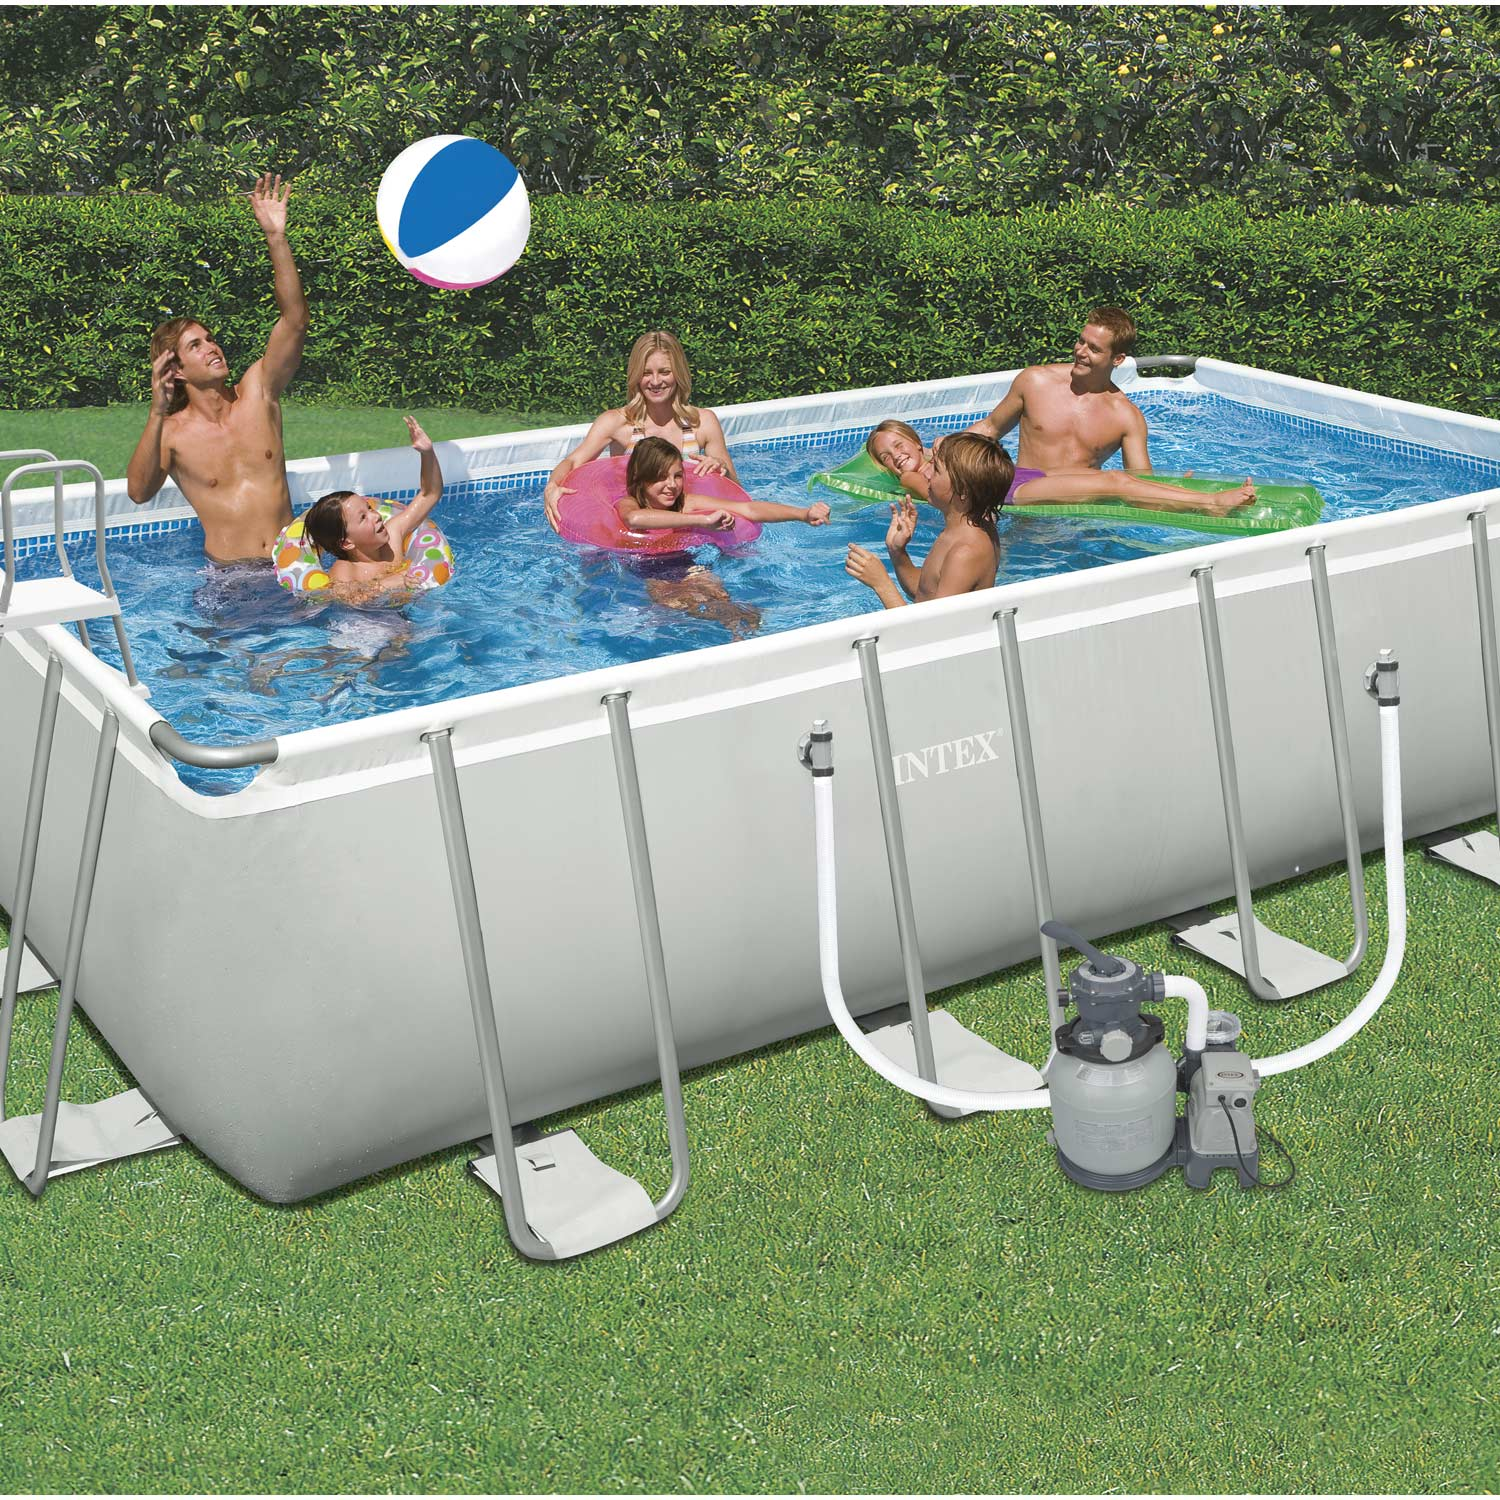 Piscine hors sol autoportante tubulaire intex l x l for Petite pompe piscine